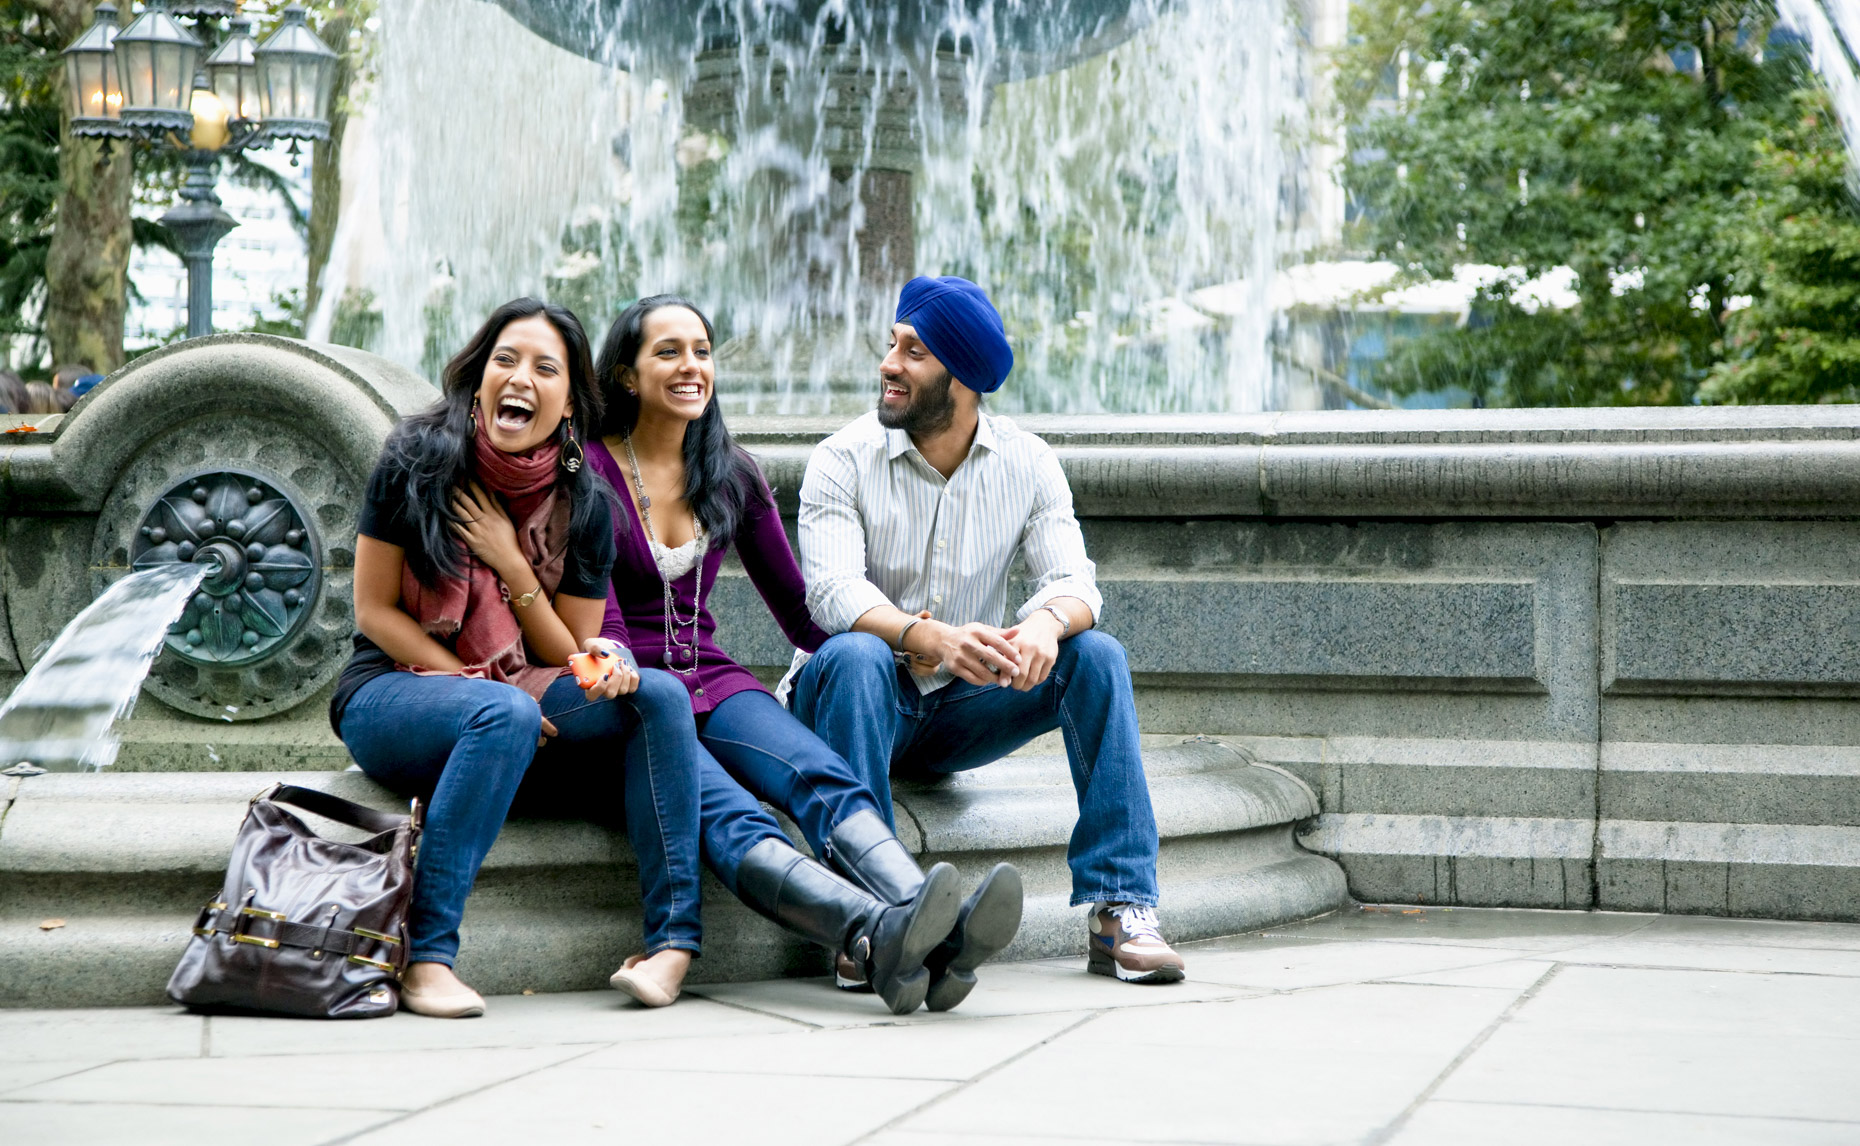 Indian-friends-sitting-by-fountain-in-park-laughing-Inti-St-Clair-Lifestyle-is200909260249copy